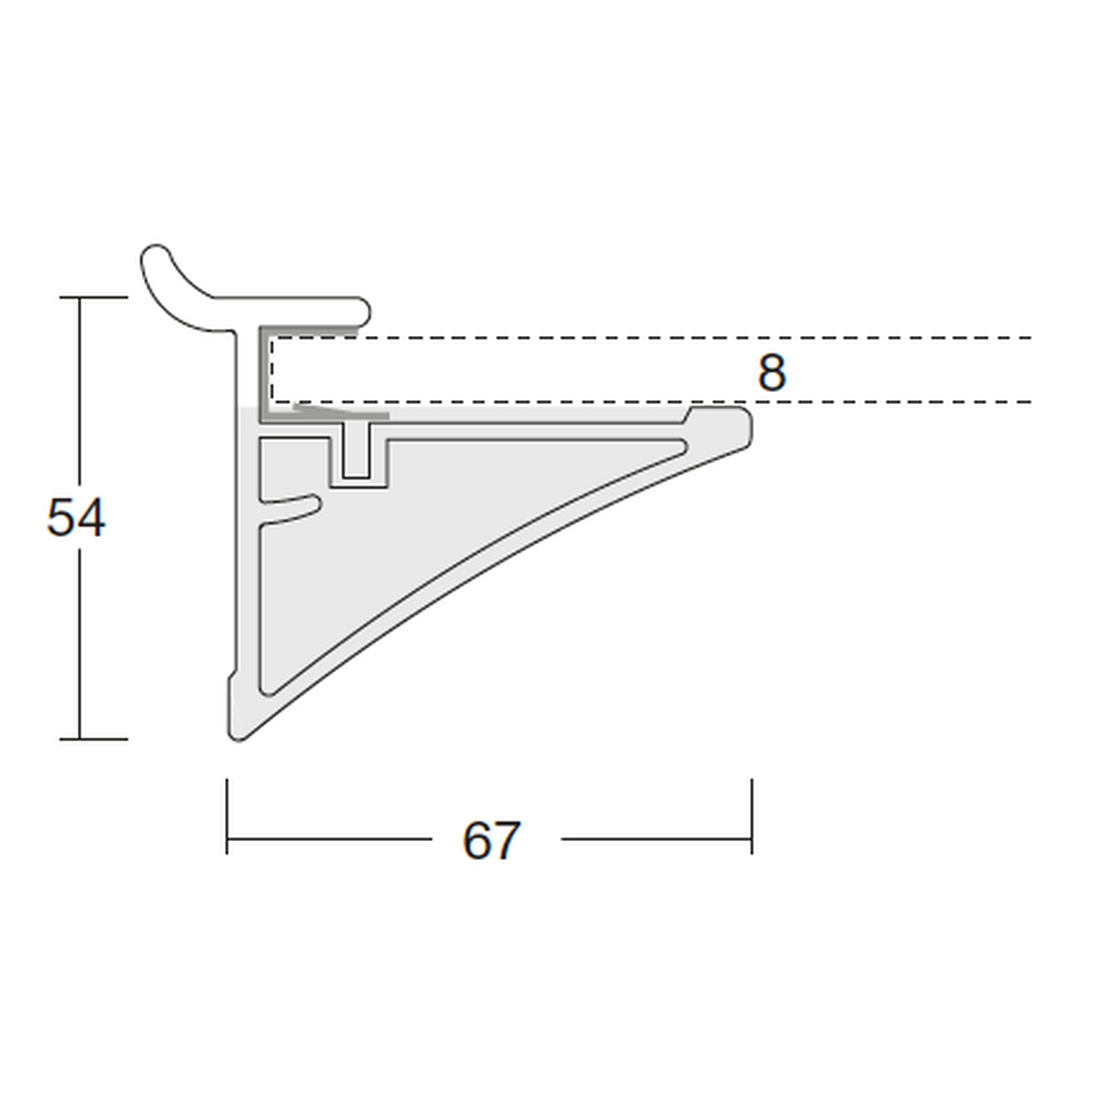 PROFILE FOR GLASS PLATES 8MM I 800MM